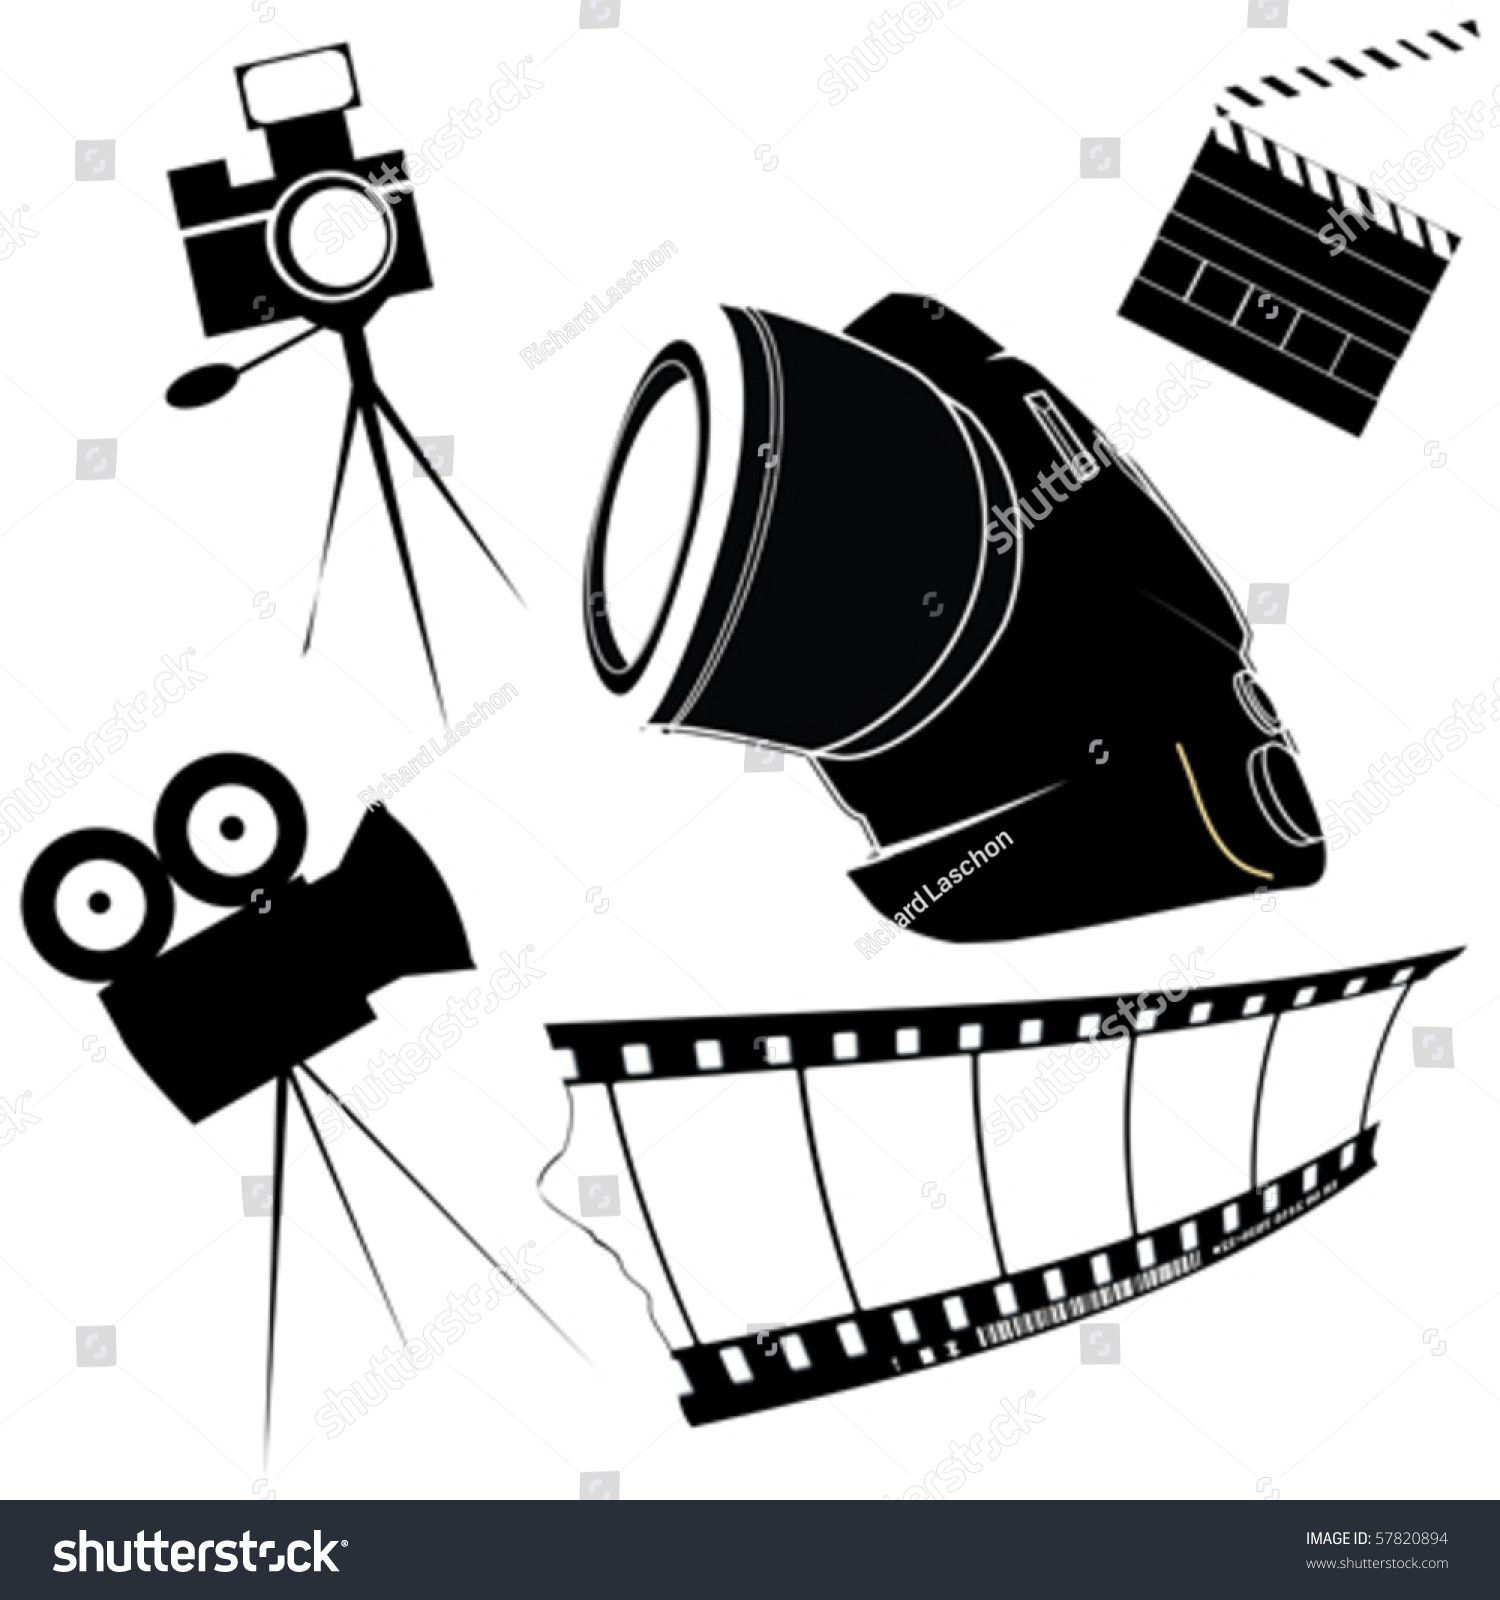 Photography Film Making Related Icons Stock Vector 57820894 ...